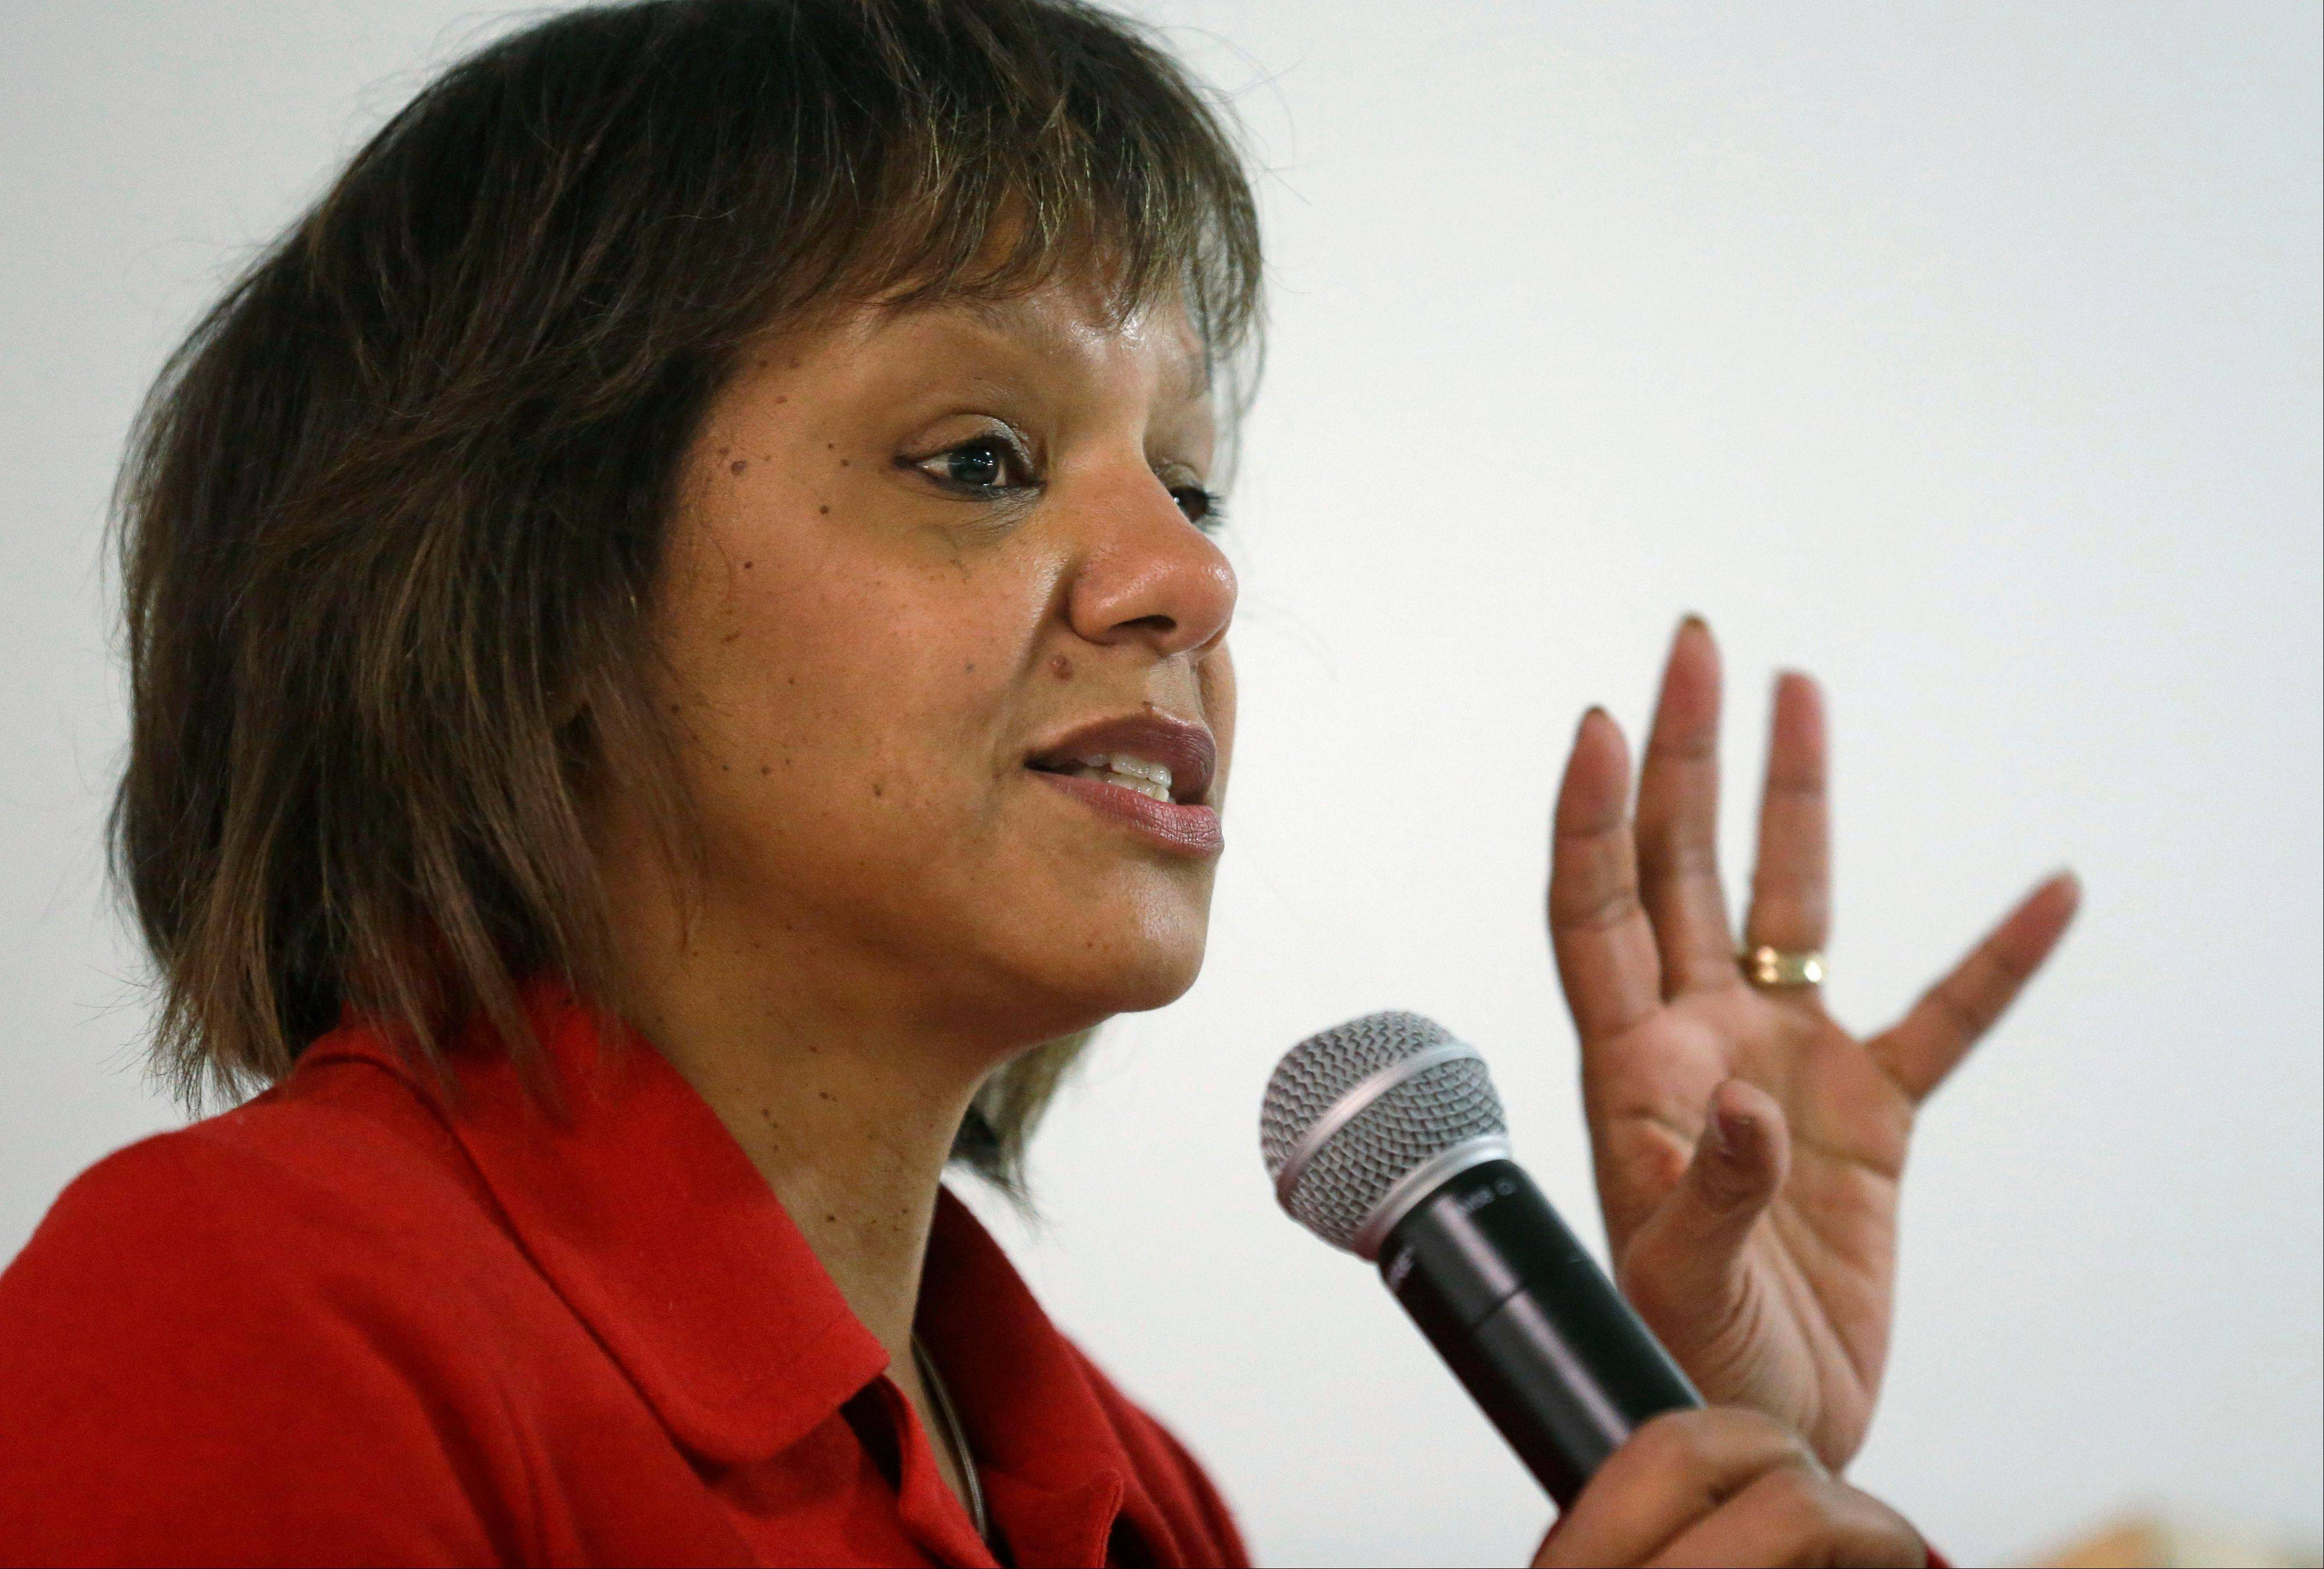 Former state legislator Robin Kelly speaks to the International Ministers & Community Alliance Thursday in Chicago after receiving the group's endorsement in her bid to replace former U.S. Rep. Jesse Jackson Jr.